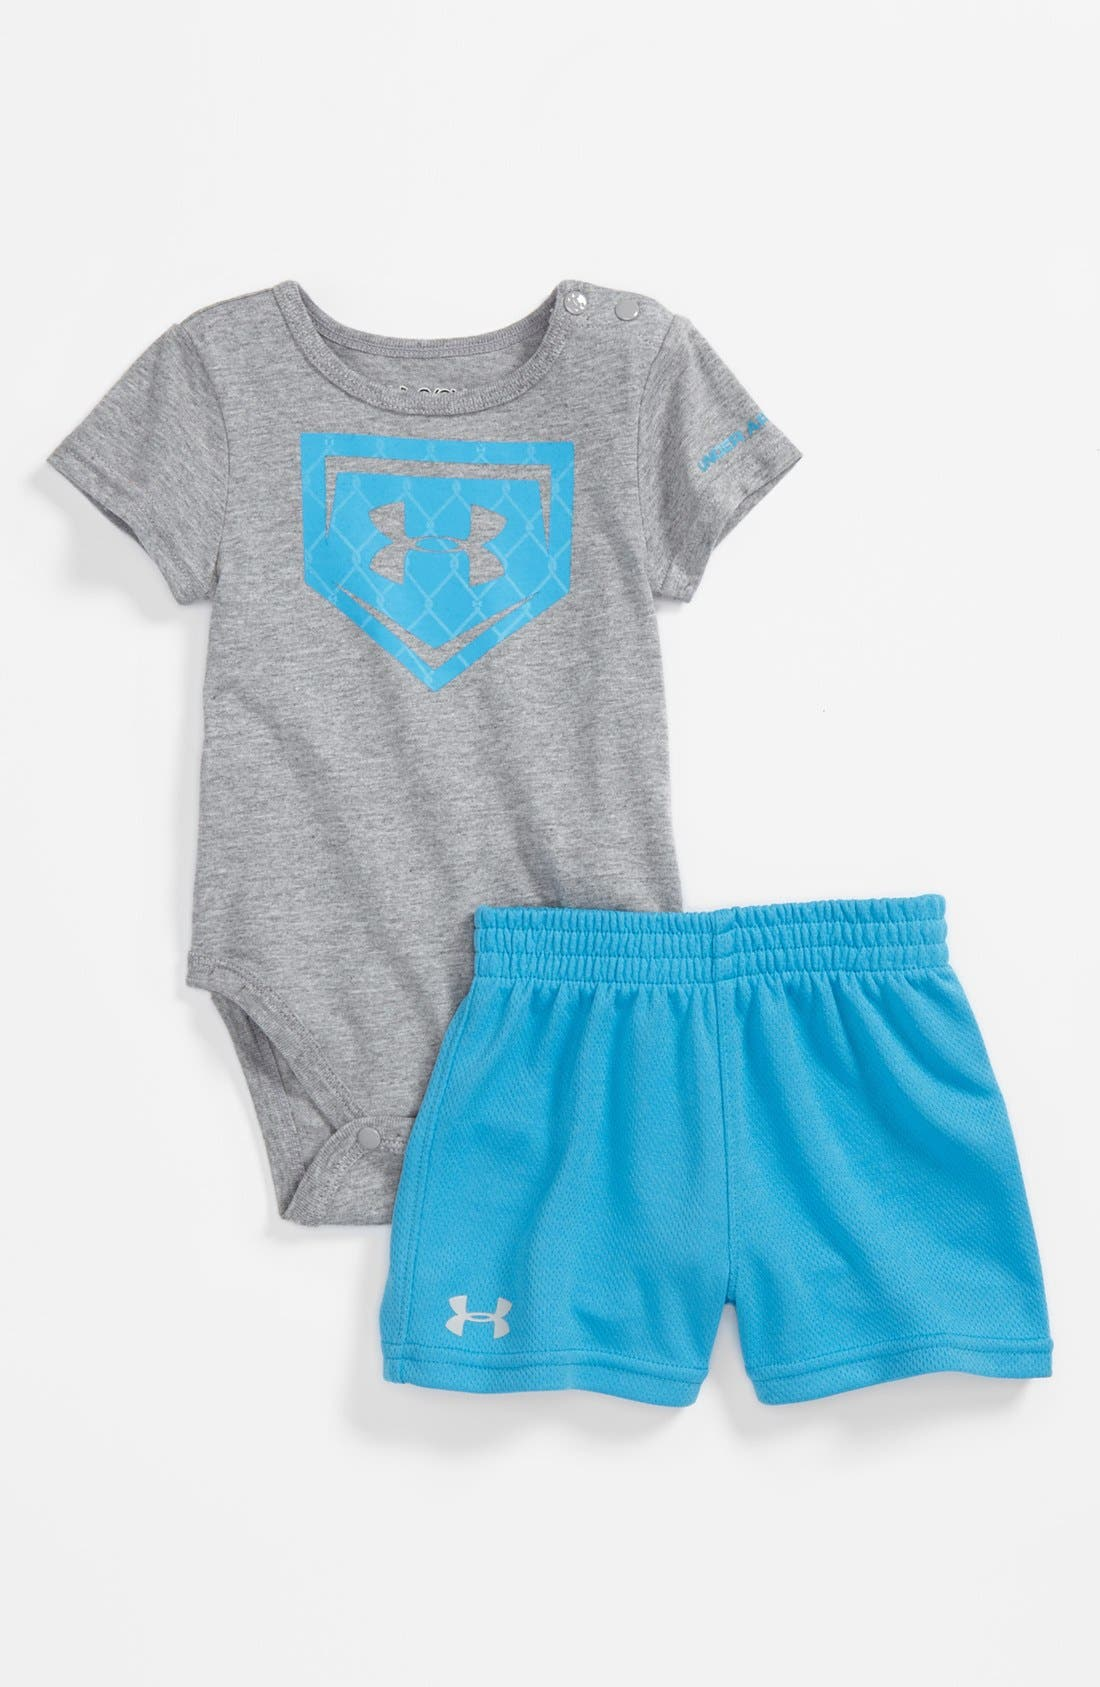 Main Image - Under Armour 'Chainlink Icon' Bodysuit & Shorts (Baby Boys)